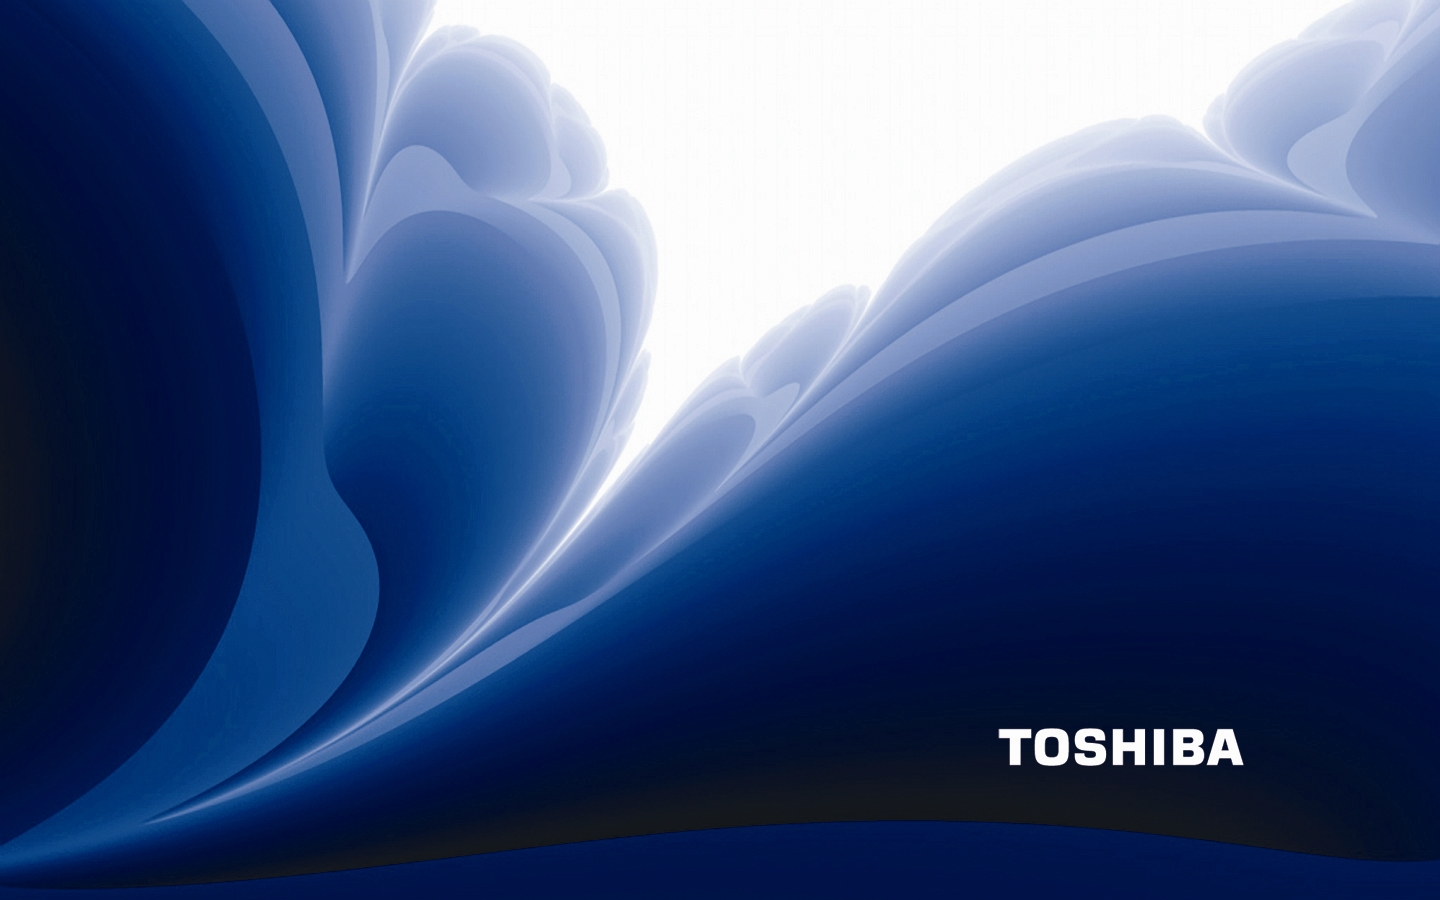 Free Download Wallpapers For Toshiba Laptop Toshiba